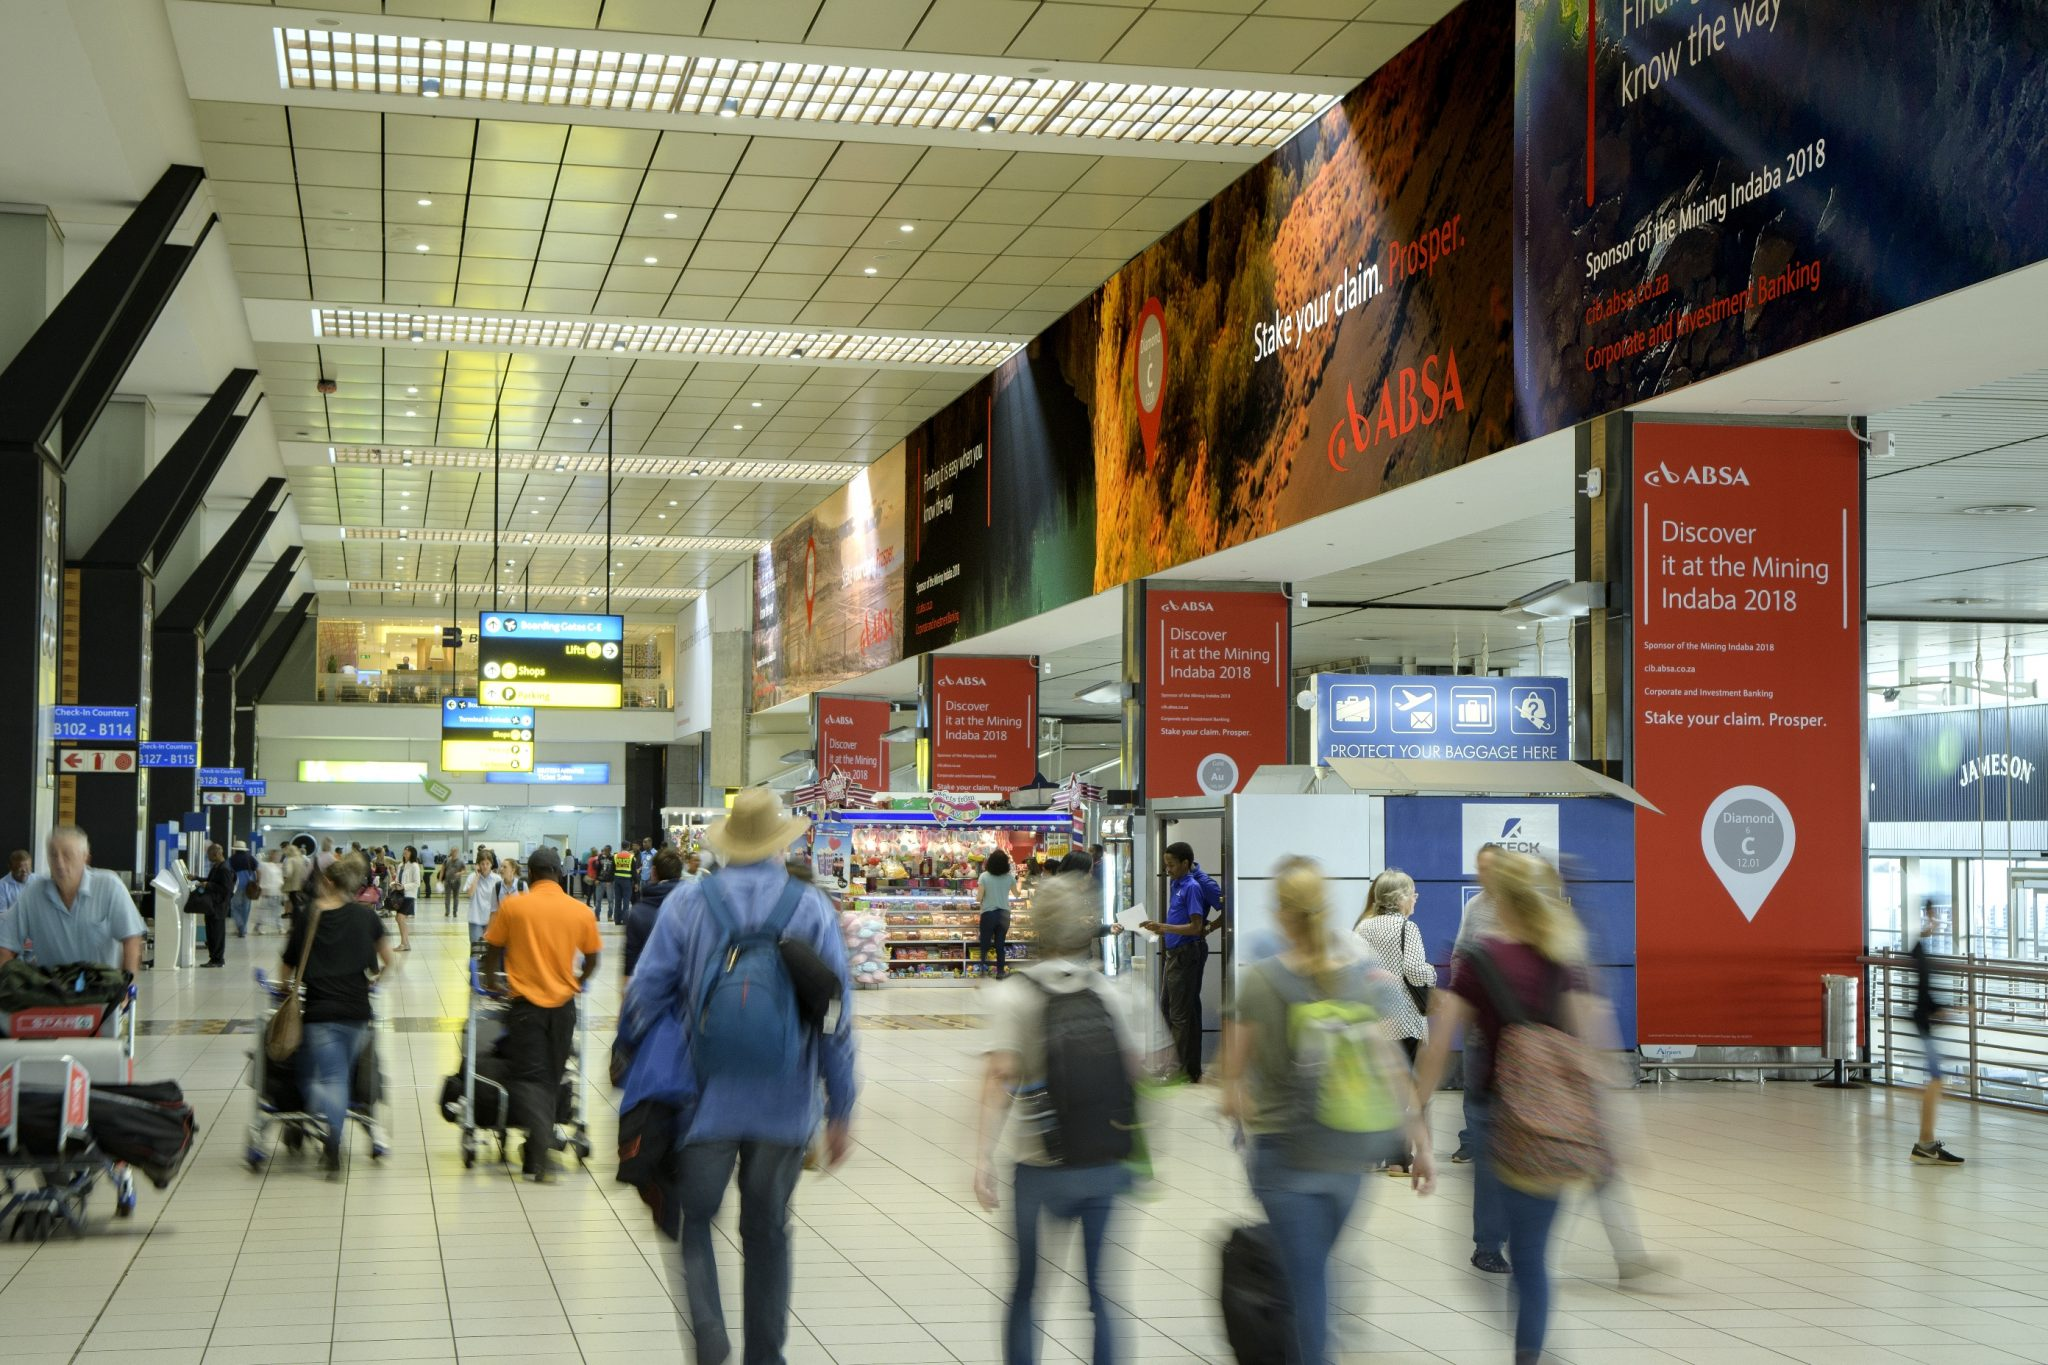 ABSA branding dominates with Airport Ads